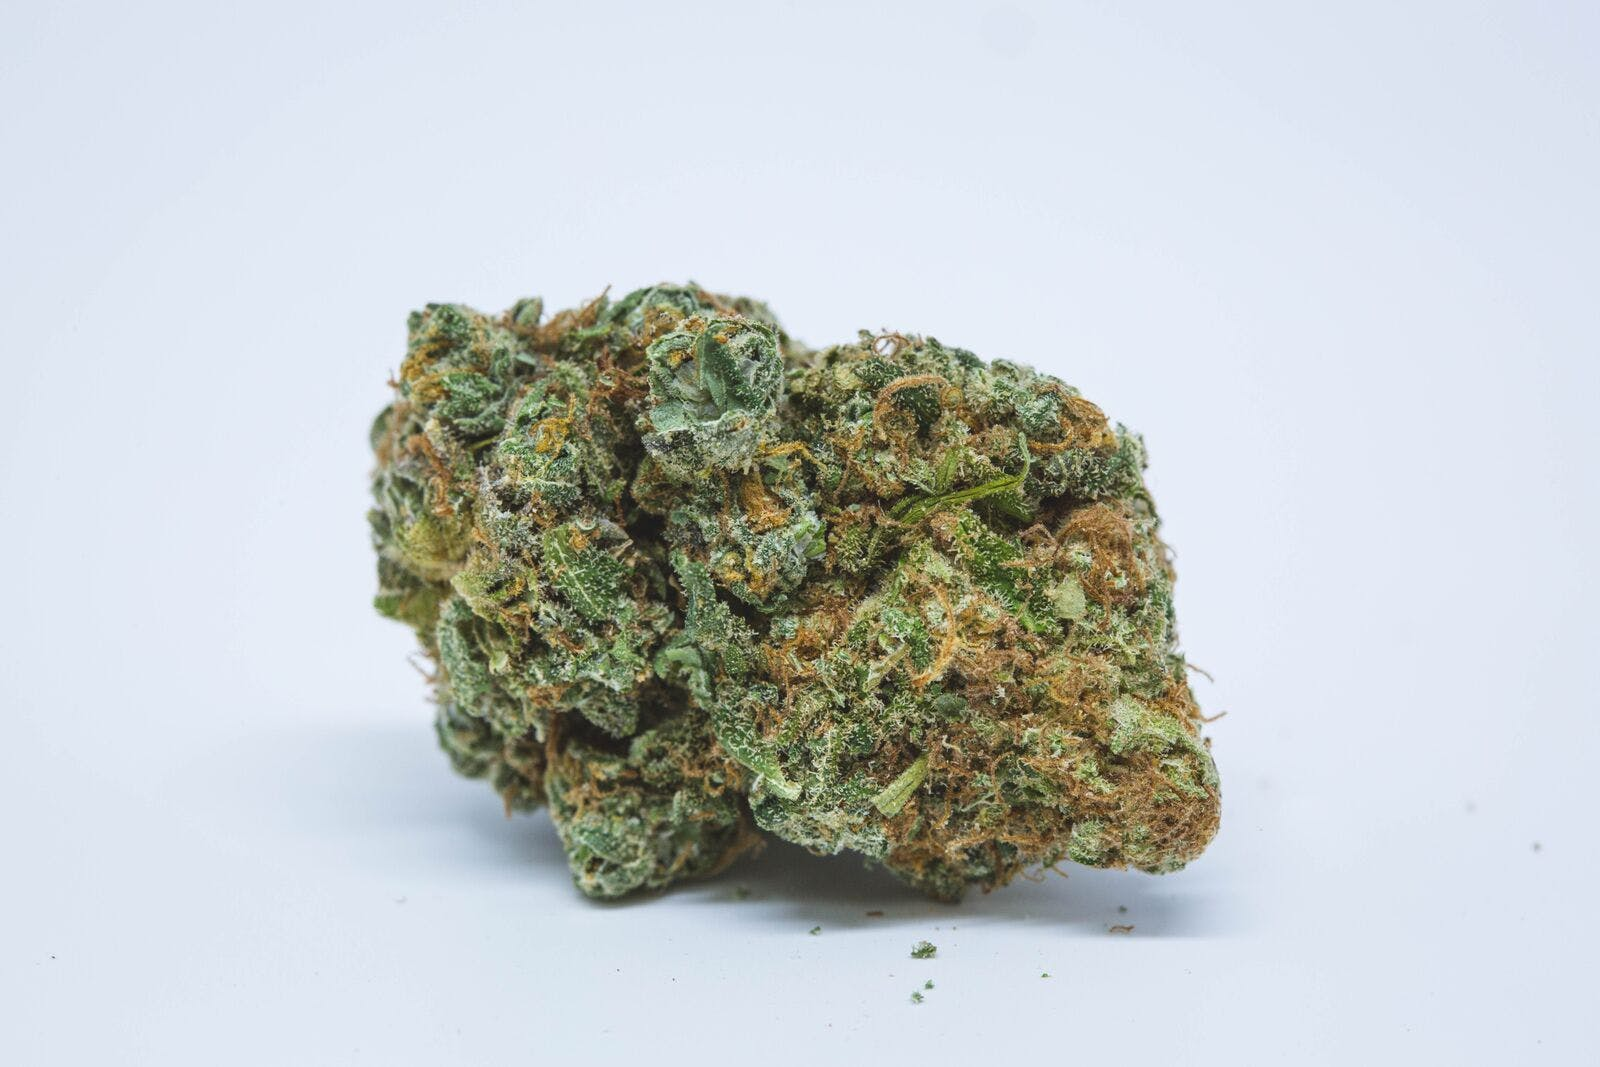 Electric Lemon G Weed; Electric Lemon G Cannabis Strain; Electric Lemon G Sativa Marijuana Strain